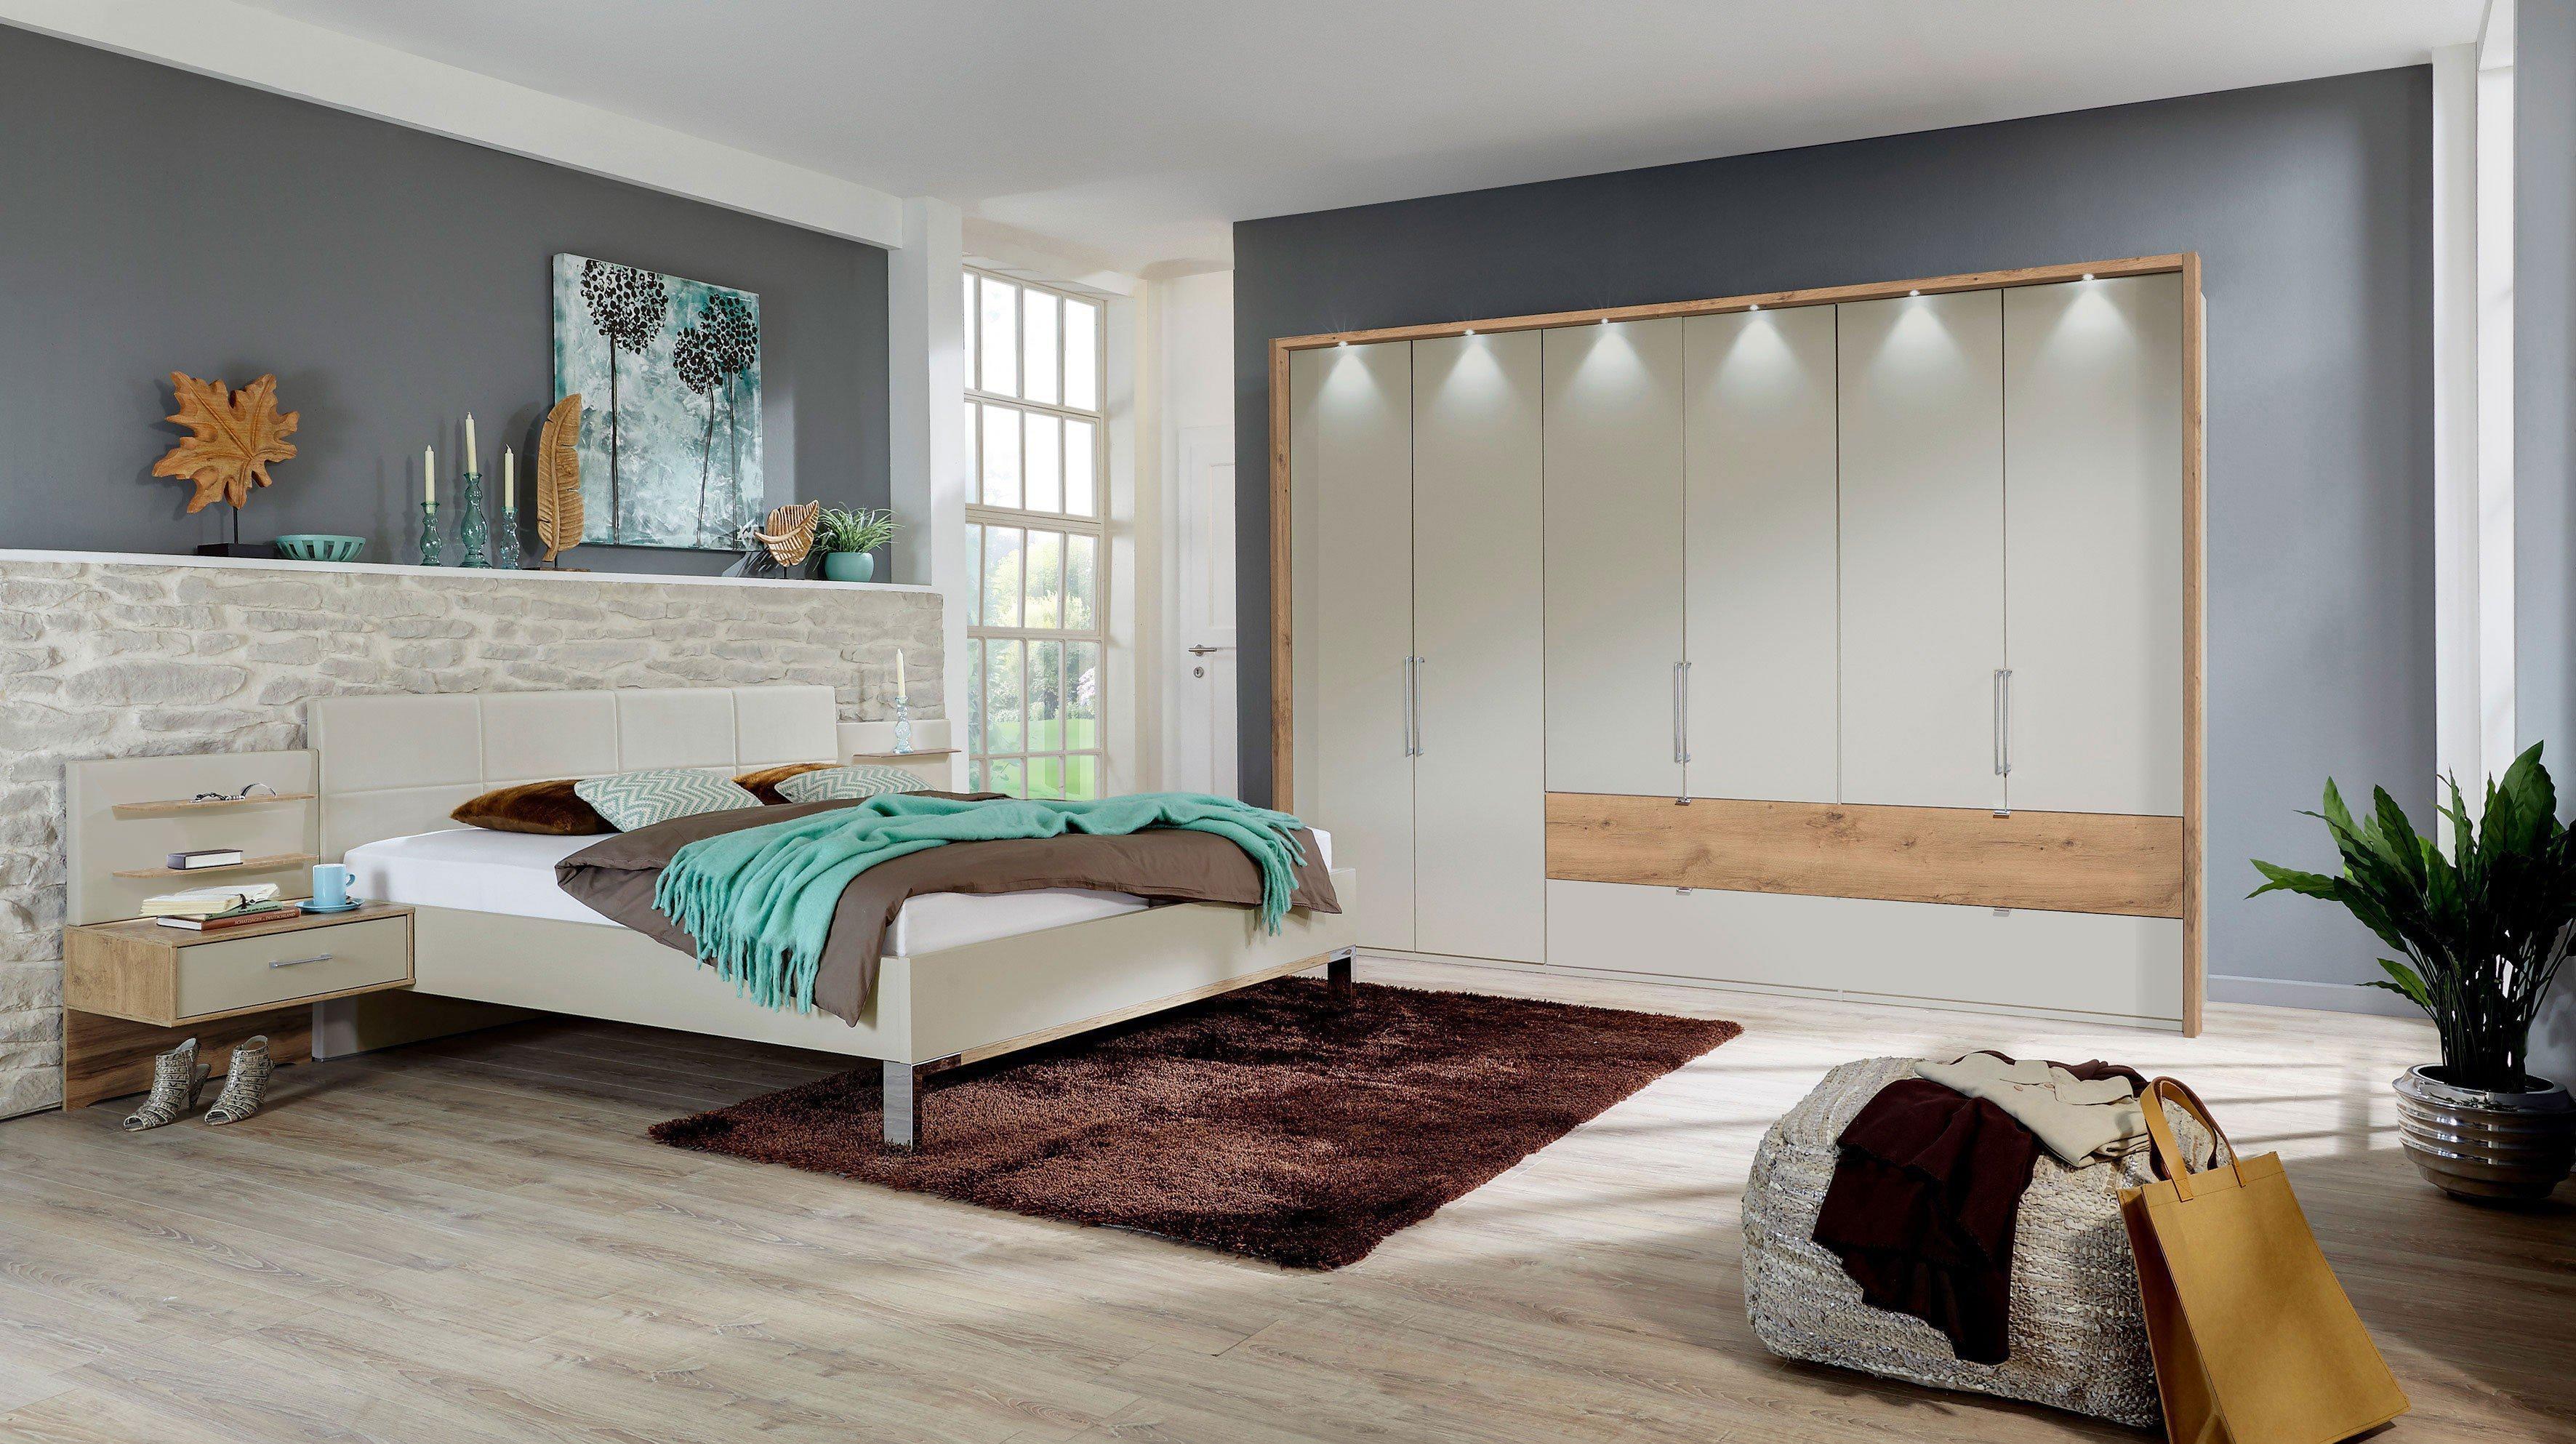 schlaf zimmer stunning in alpinwei brombeer schrank b cm bettanlage mit with schlaf zimmer. Black Bedroom Furniture Sets. Home Design Ideas